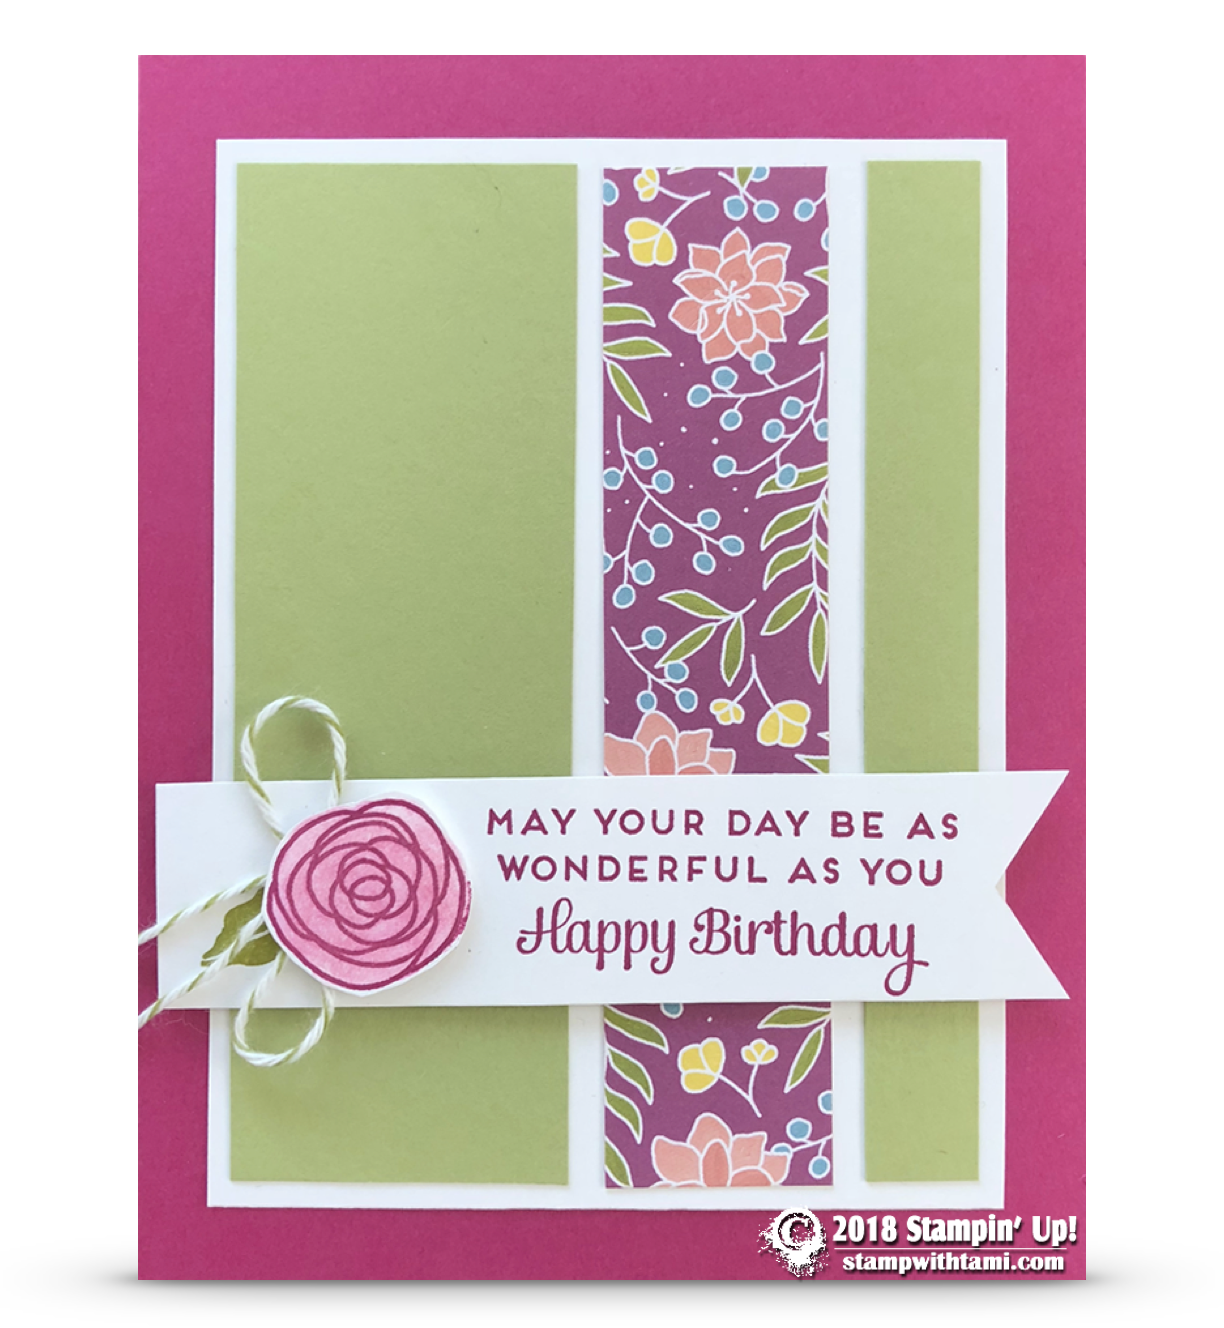 Card may your day be wonderful birthday card u part in sweet